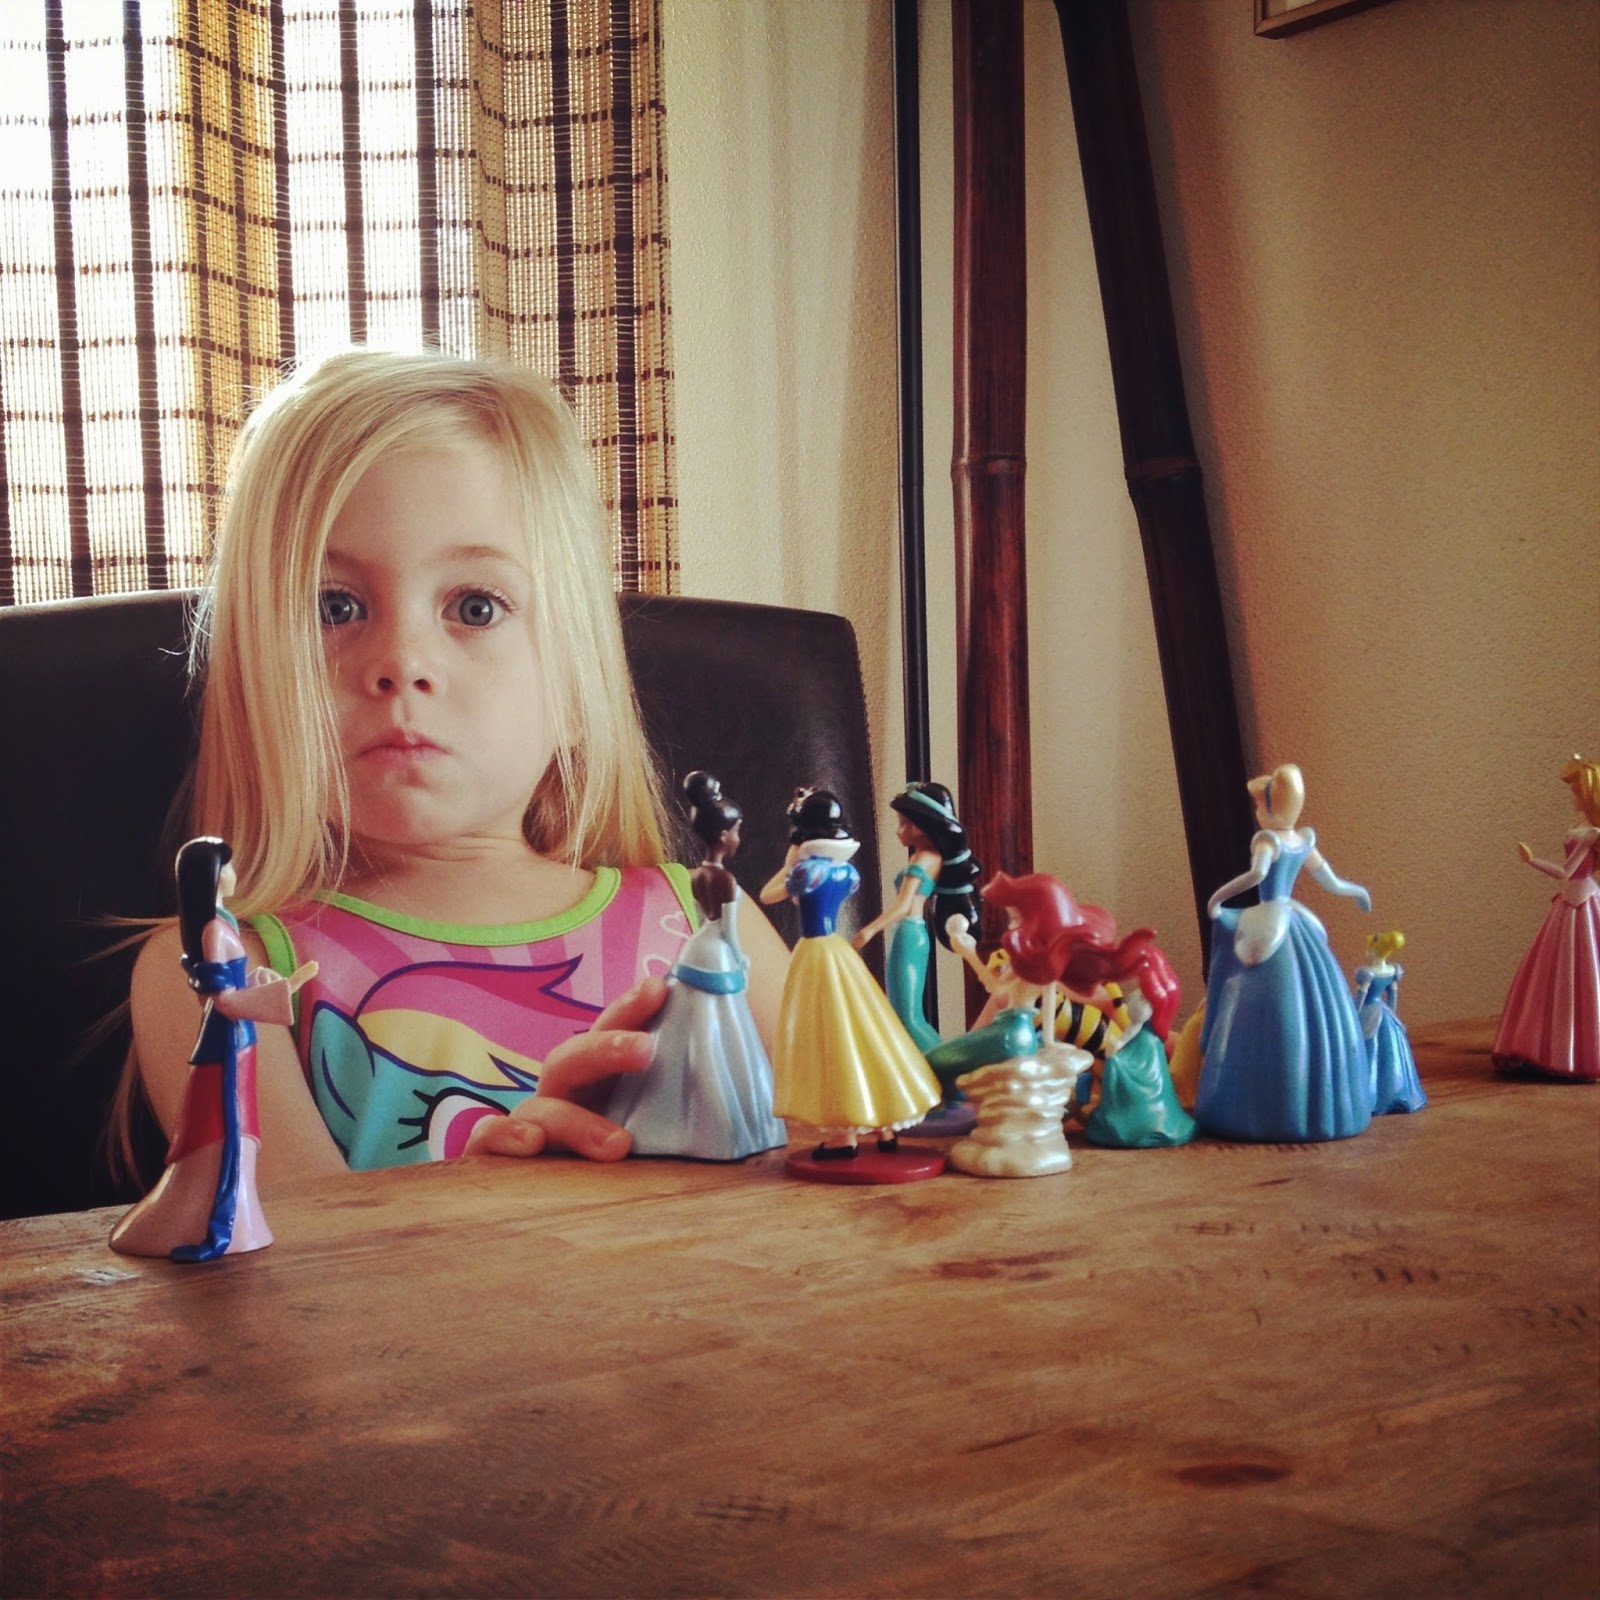 Dining Table Hemp Oil Finish girl playing with princesses disney